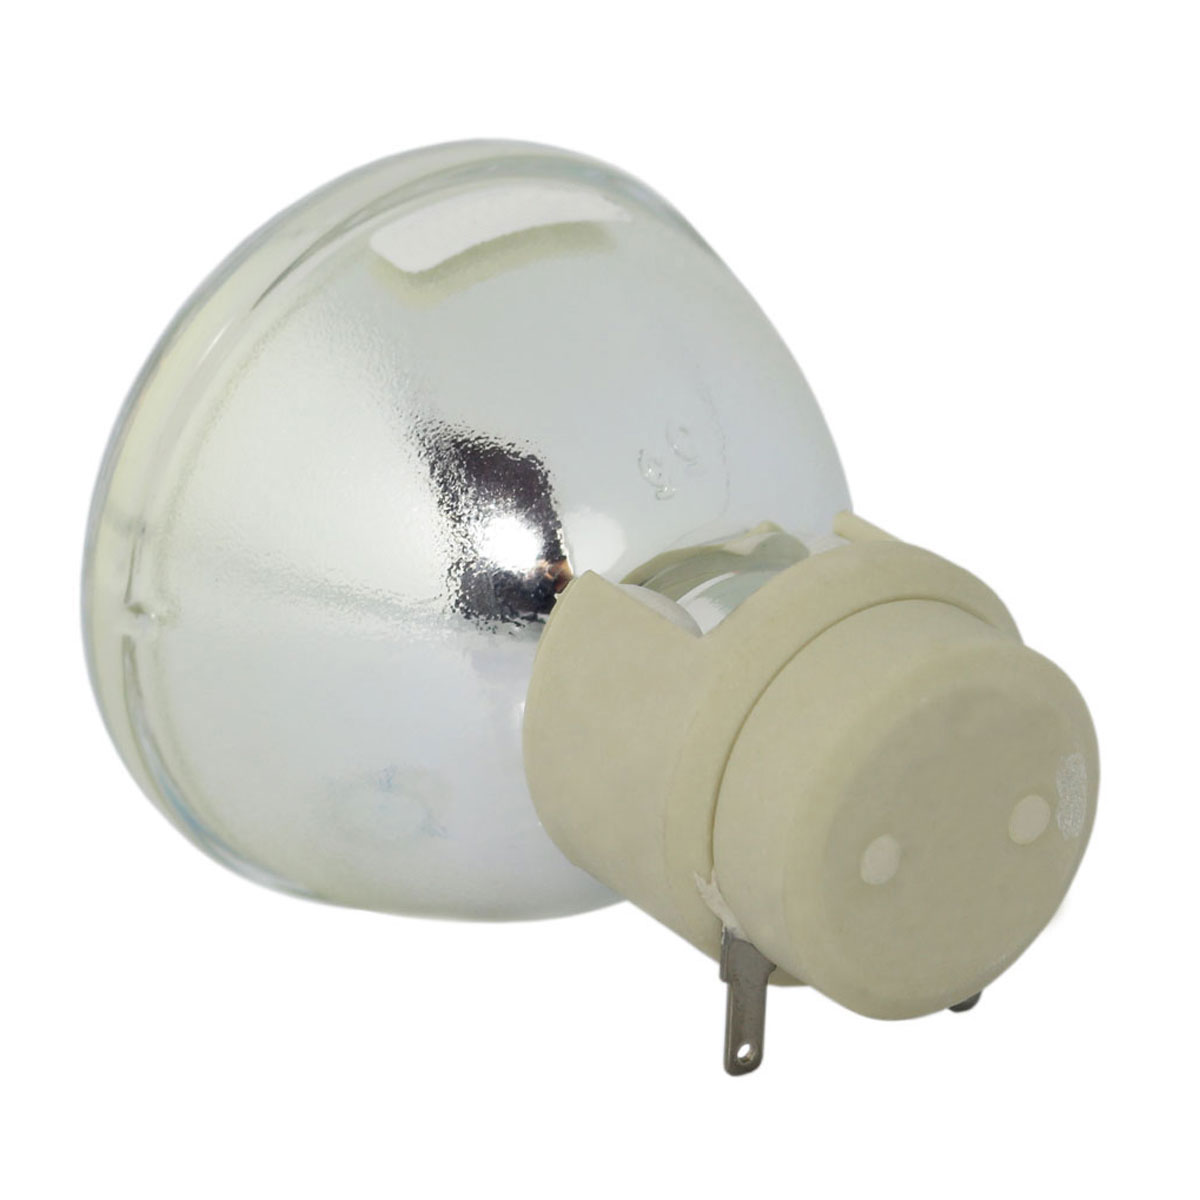 Lutema Economy Bulb for InFocus IN5535L (Lamp #1) Projector (Lamp with Housing) - image 3 de 5